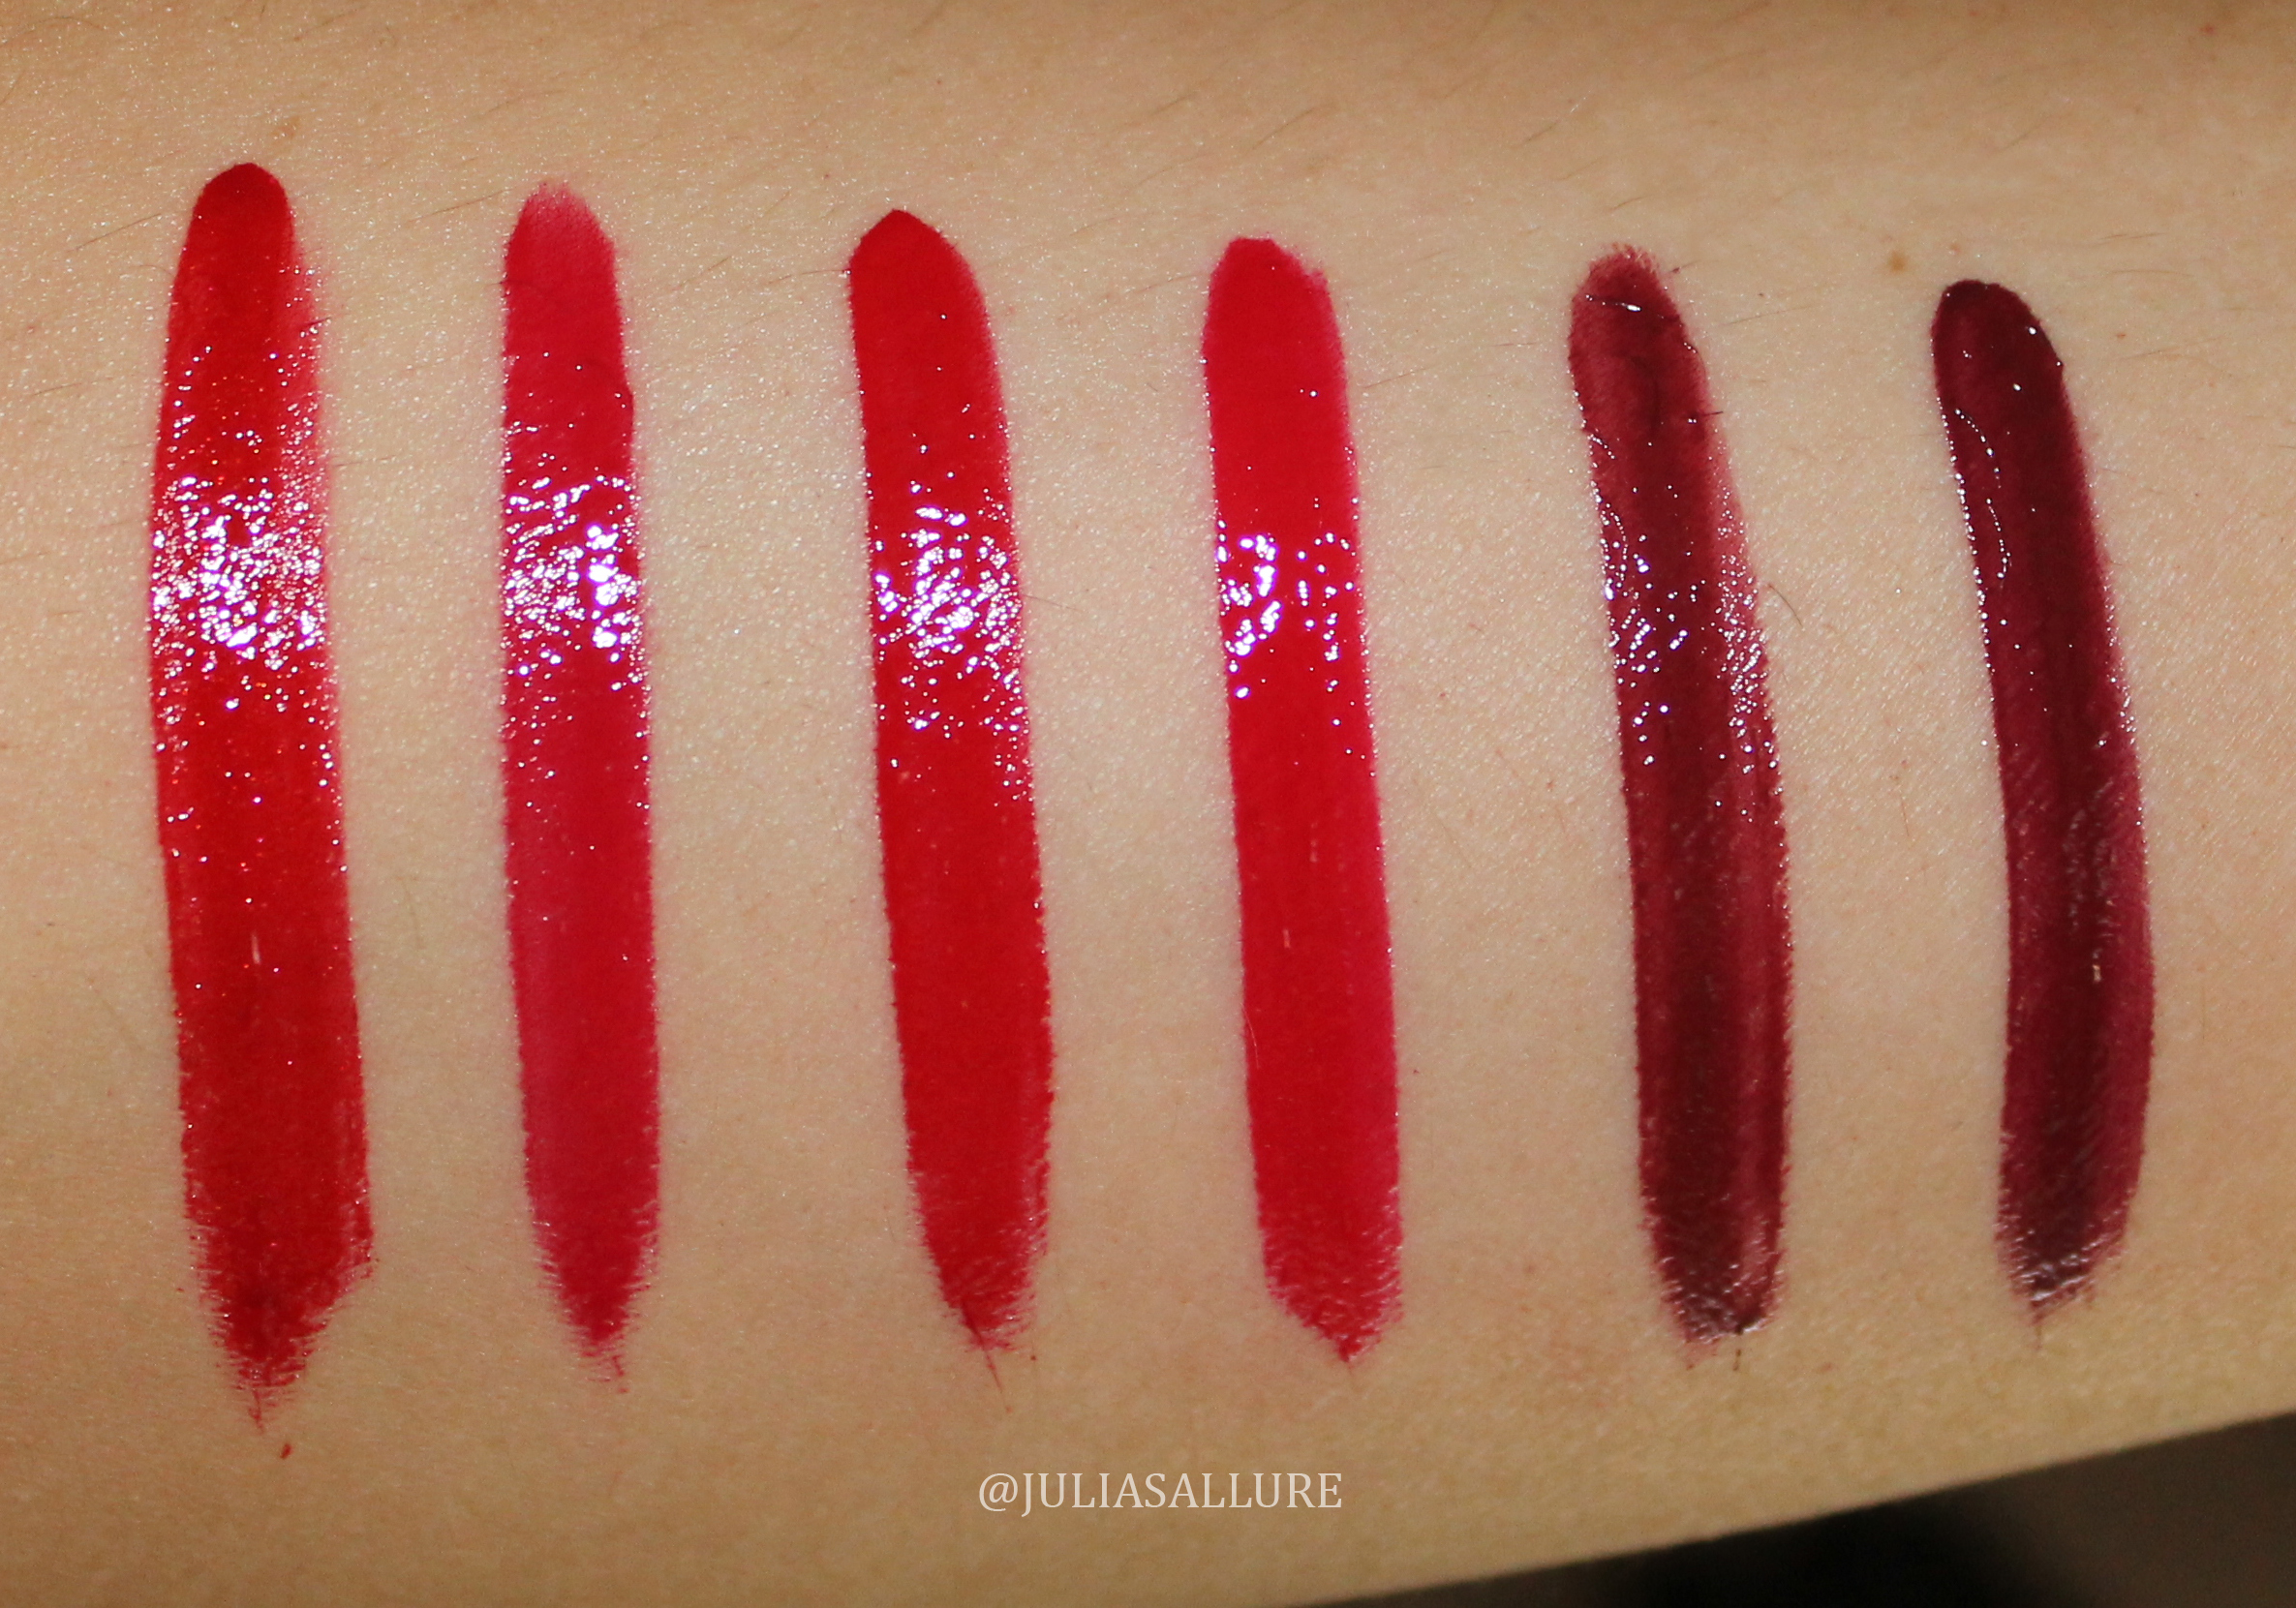 Anastasia Beverly Hills Entire Lipgloss Collection